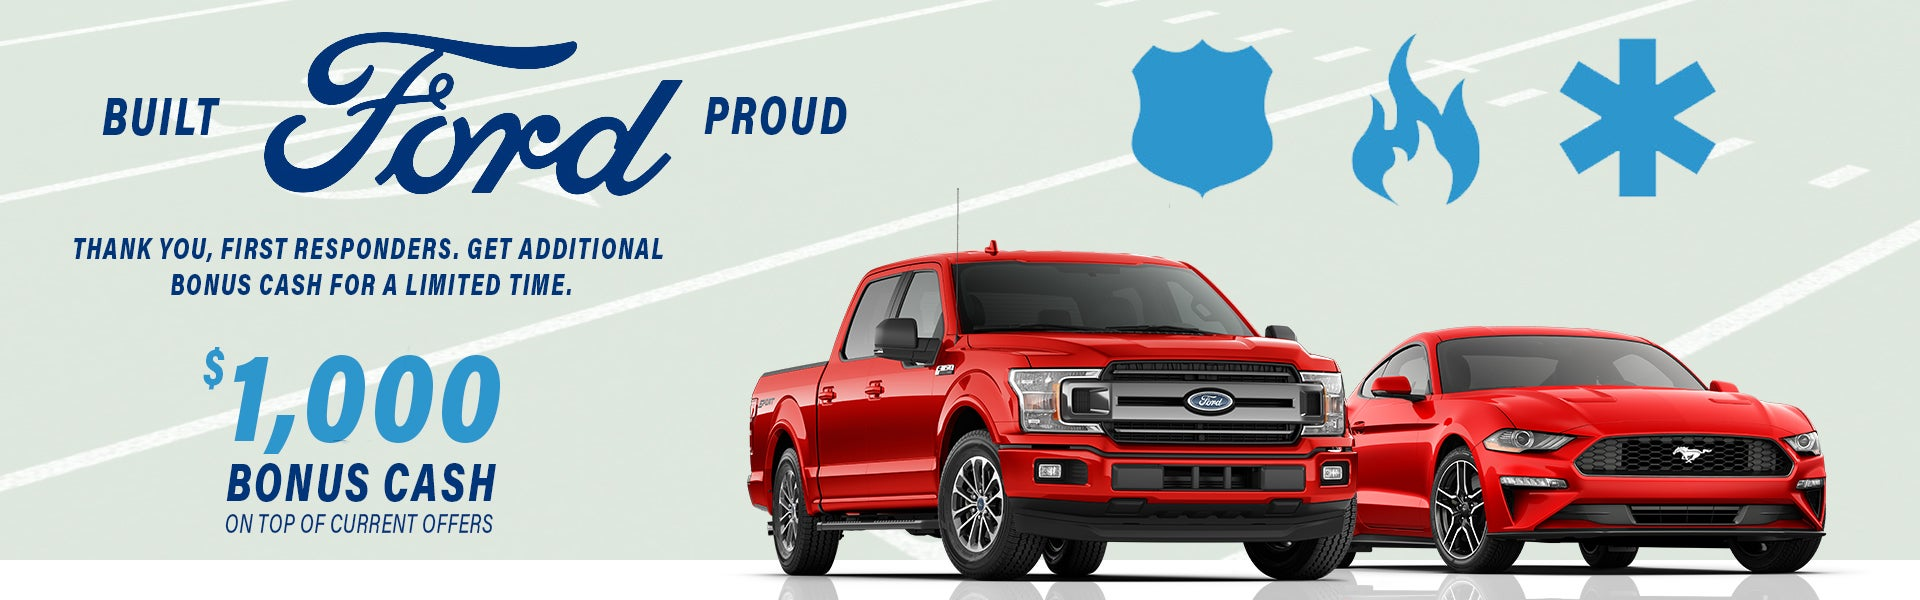 Ford Dealer in Cary, NC | Used Cars Cary | Crossroads Ford